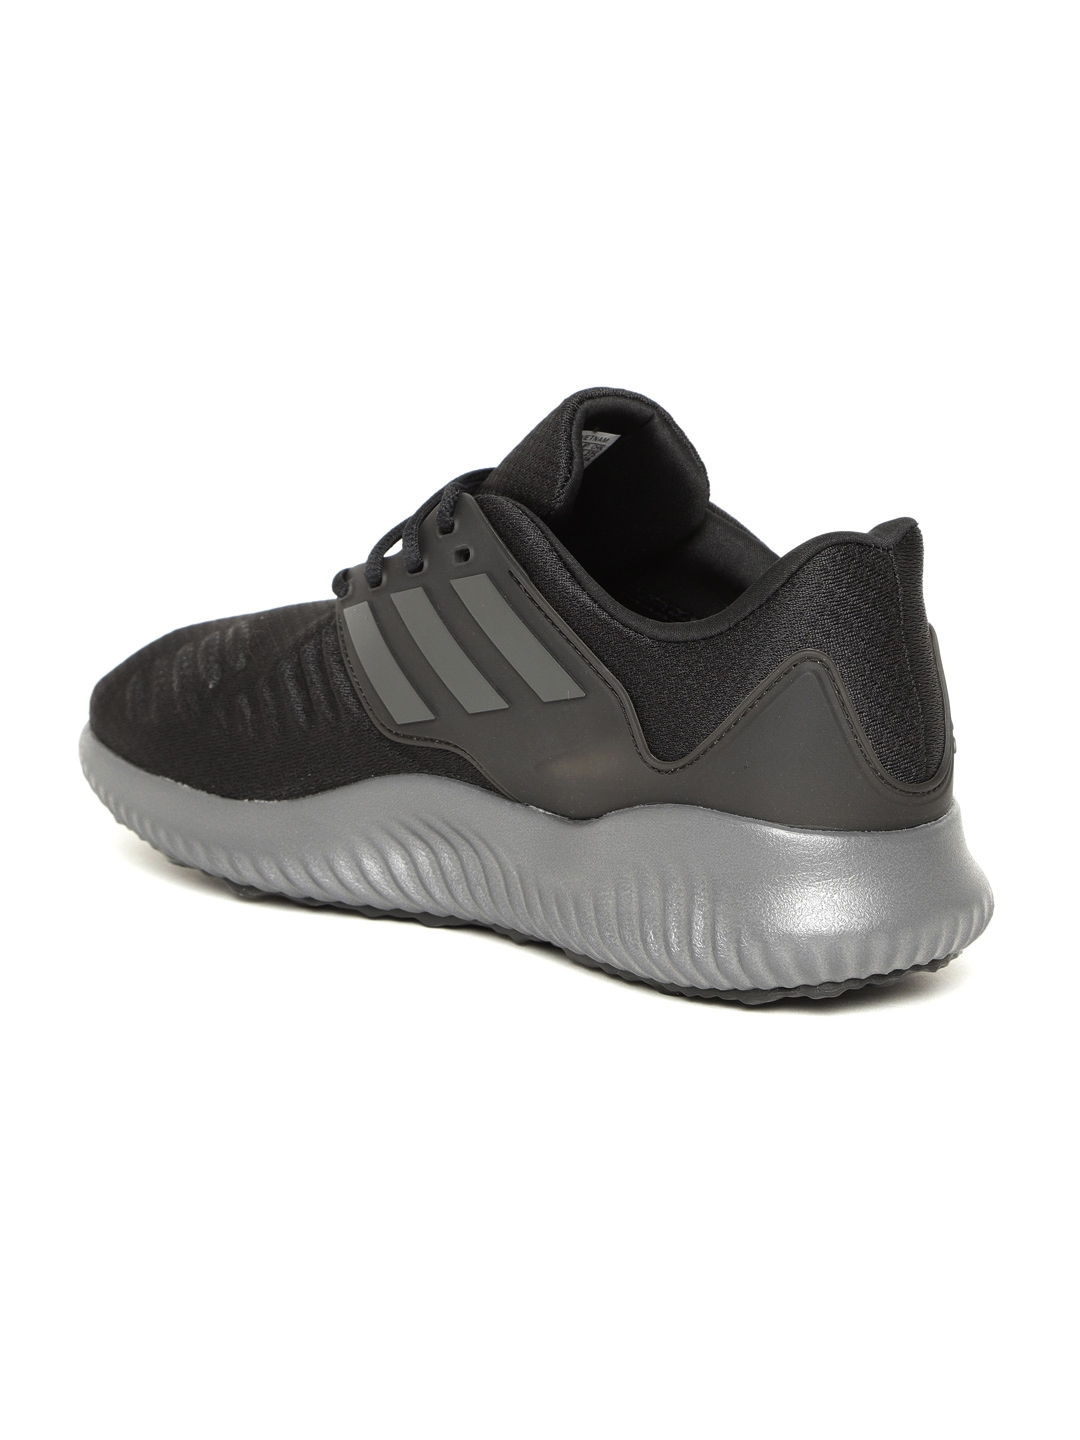 1e8f7f9328b49 Buy ADIDAS Men Black Alphabounce RC. 2 Running Shoes - Sports Shoes ...